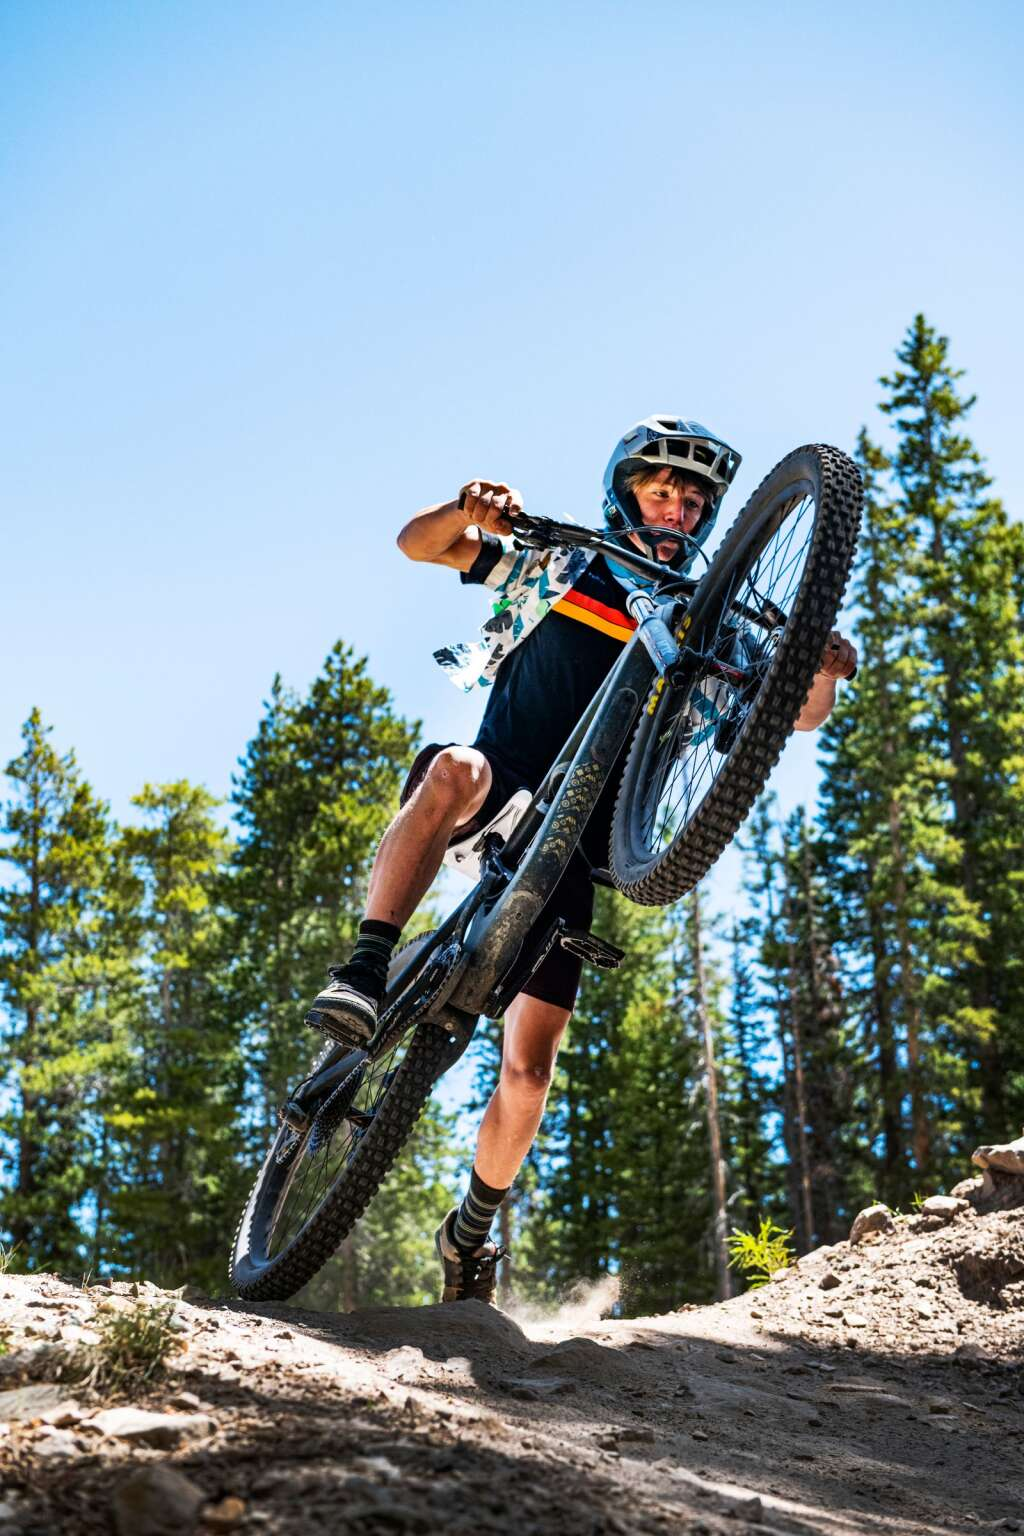 Peter Cull, 16, pops a wheelie on a jump on Valhalla while riding in the Snowmass Downhill Bike Park on Tuesday, June 30, 2020. Cull is from Denver and has been mountain biking for at least 6 years.  (Kelsey Brunner/The Aspen Times)